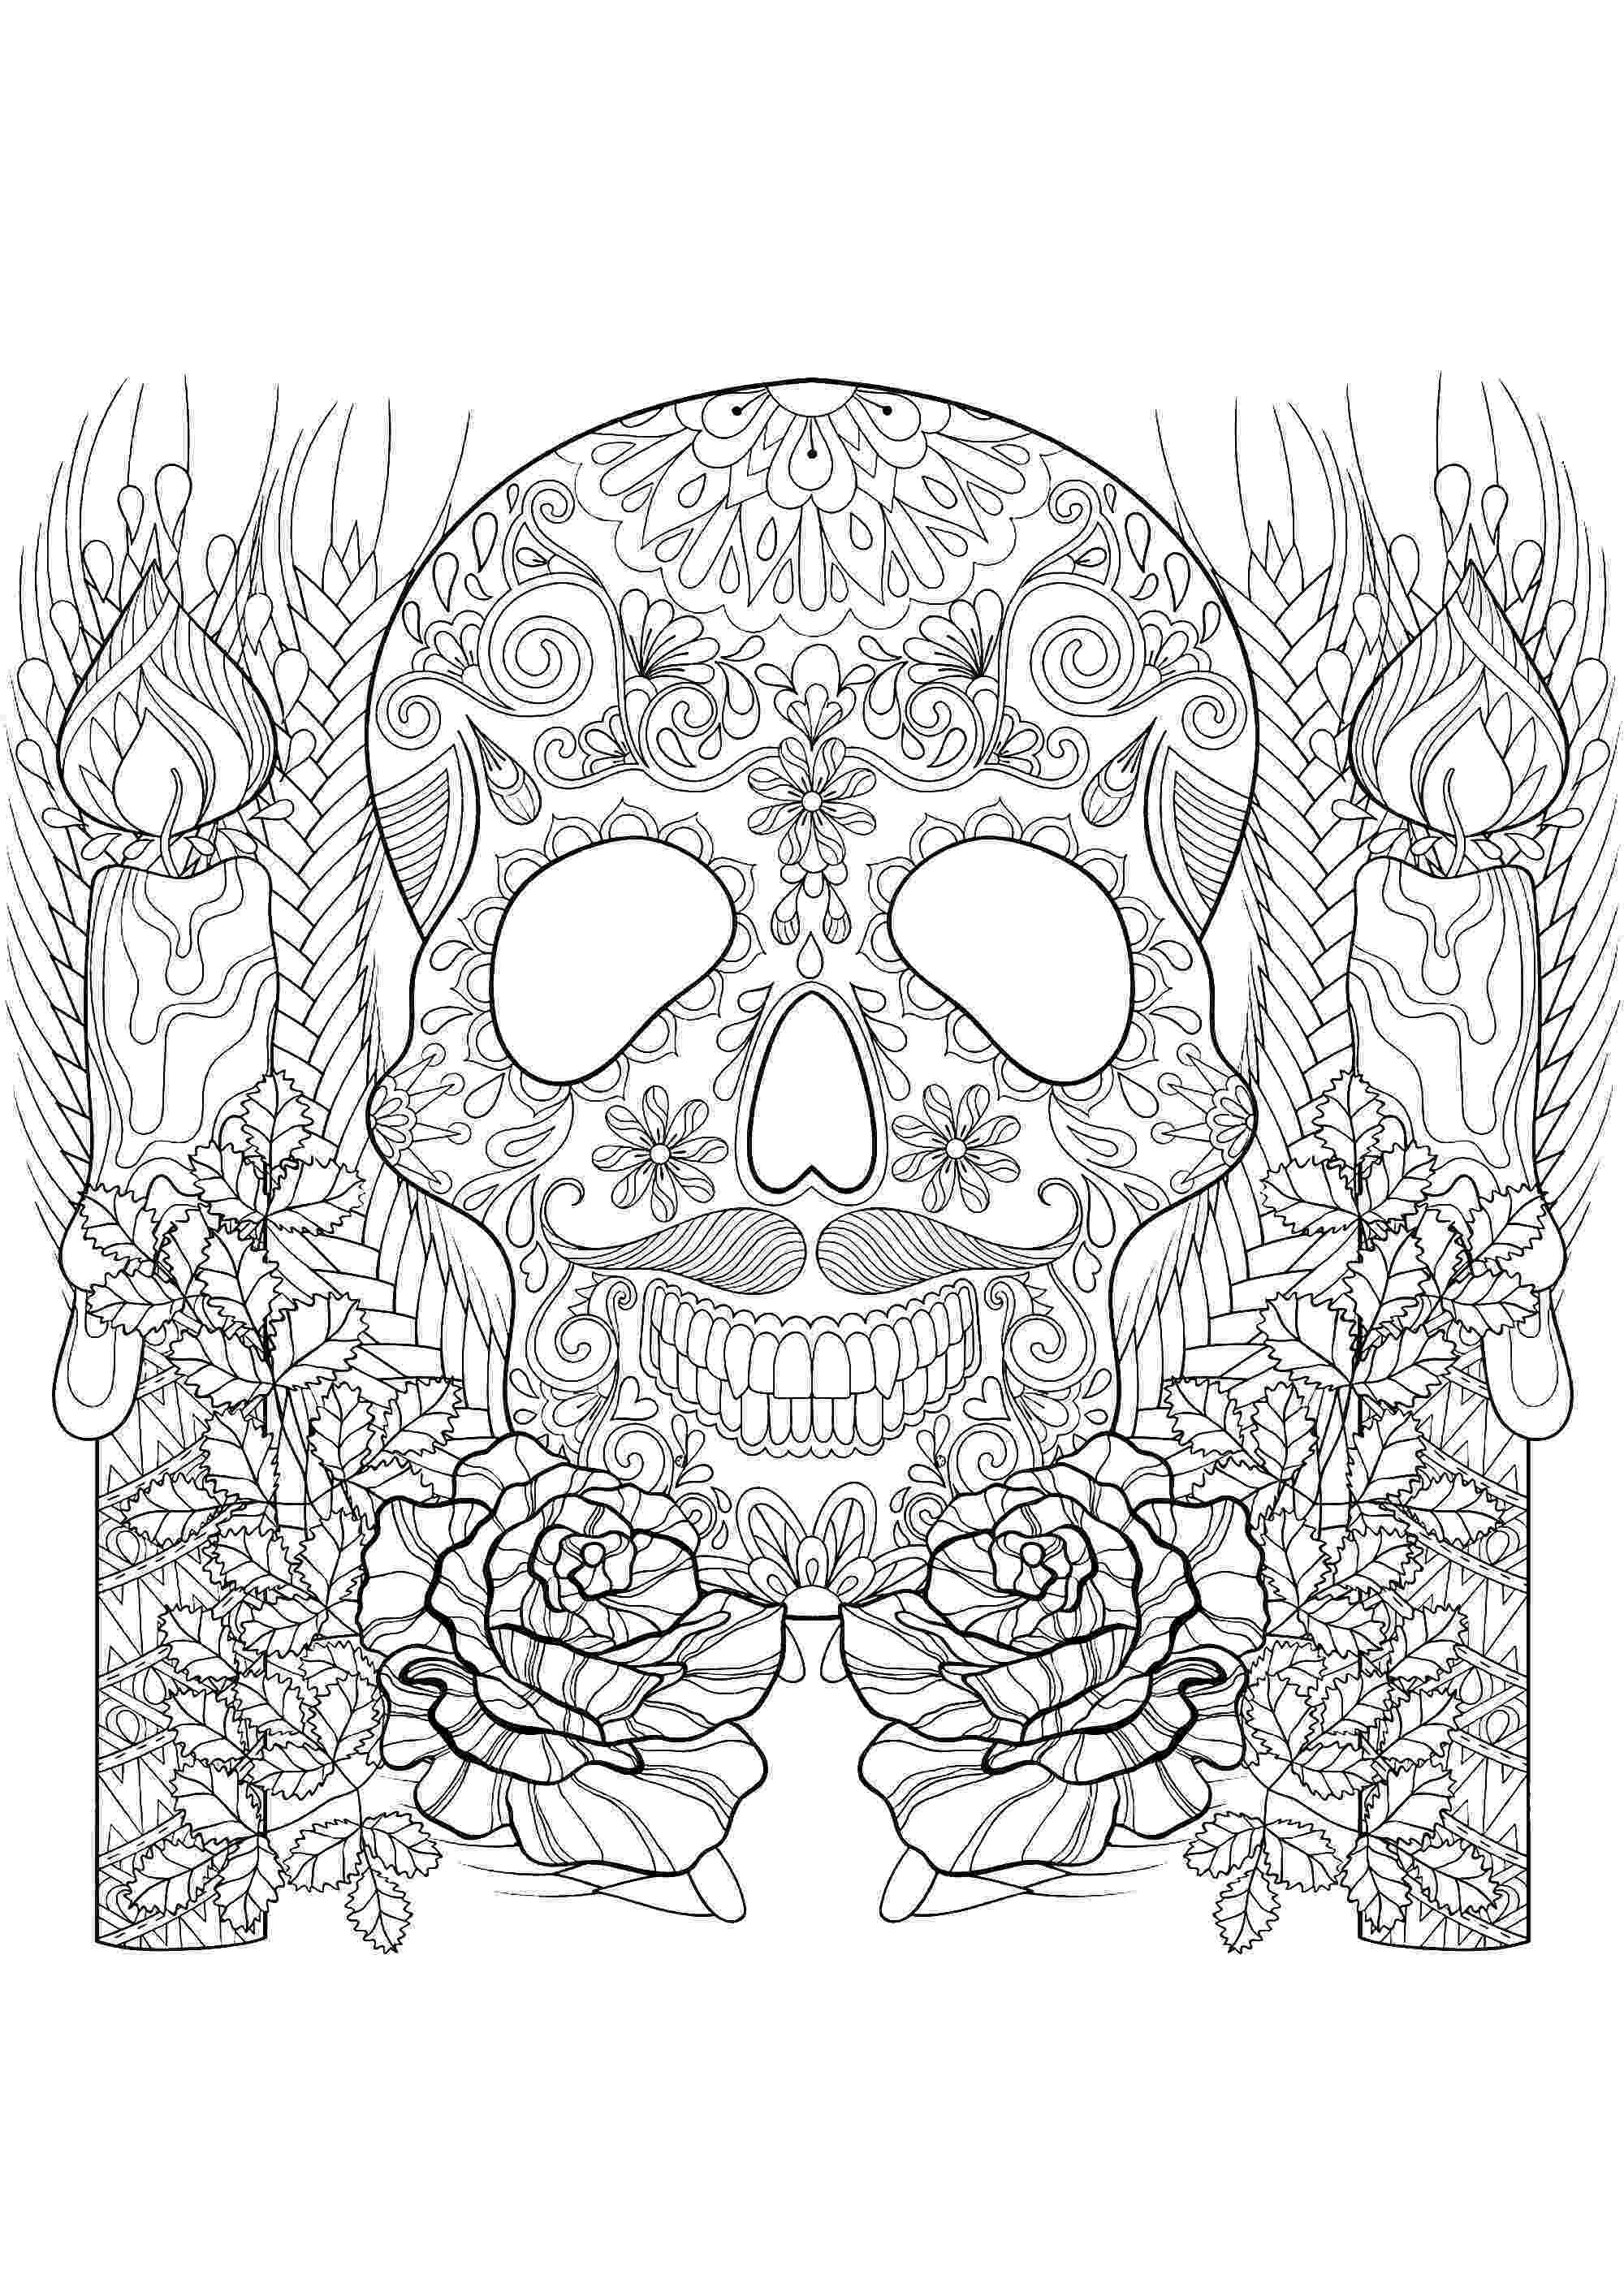 coloring book for adults beautiful day 10985 best desenhos para colorir images on pinterest day beautiful for coloring book adults